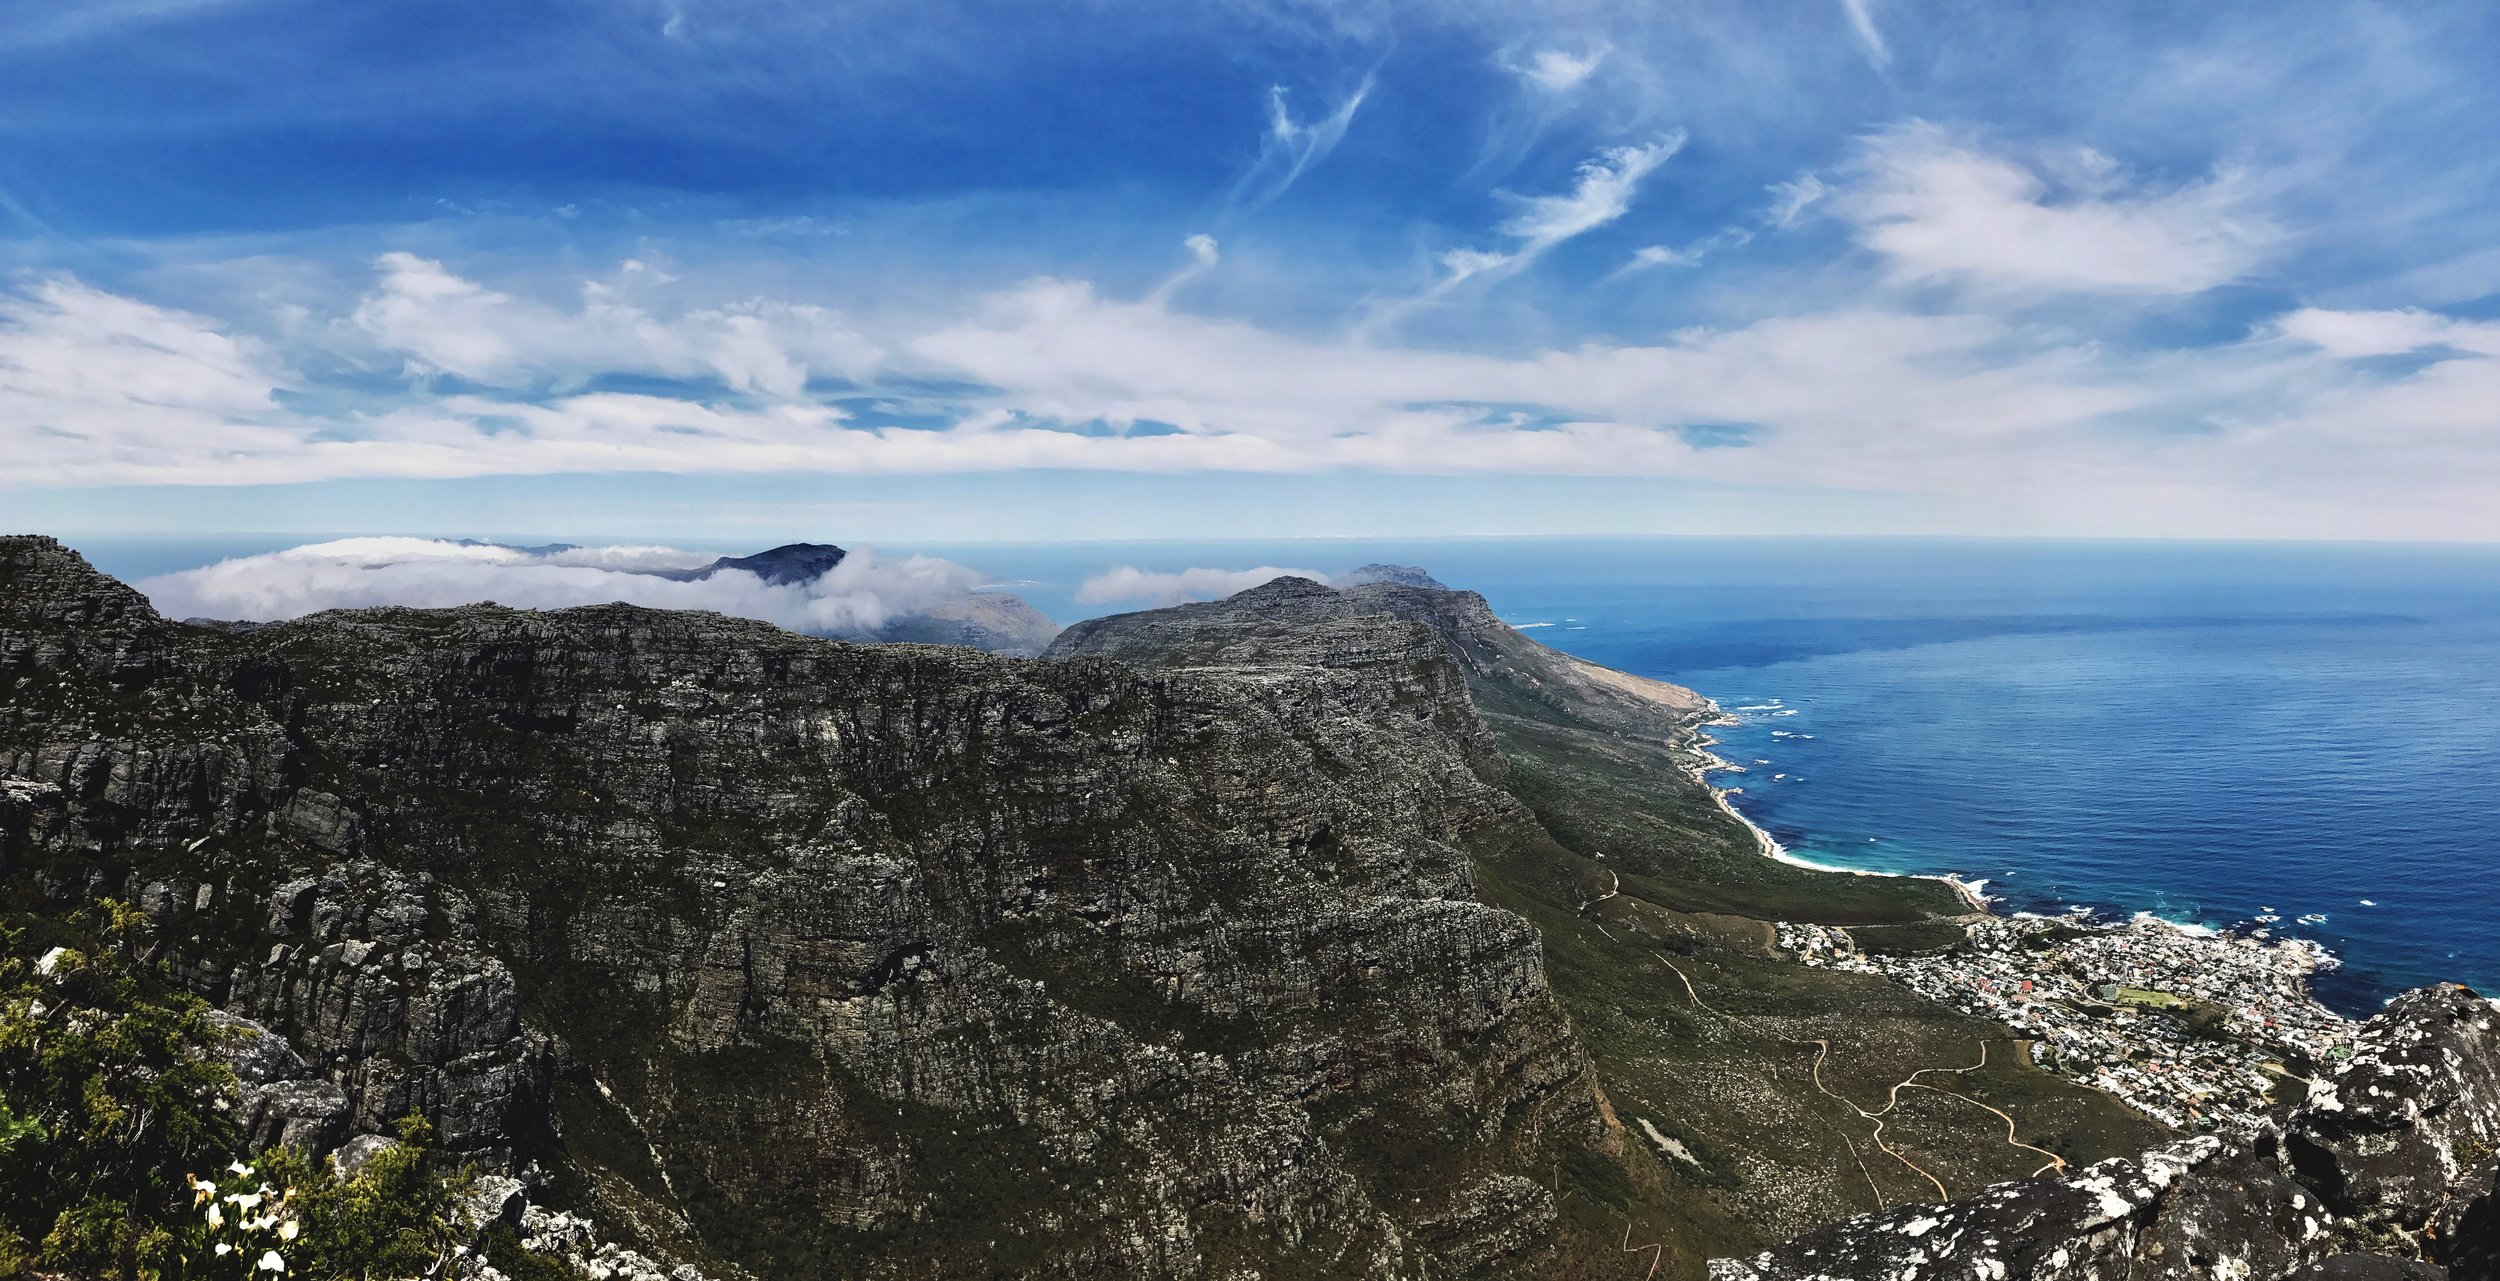 It's incredible the amount of resolution available by using the simple Panoramic feature on iOS. Take a look at this photo on top of Table Mountain. To do this with my A7Rii, I would need to work on some pretty heavy stitching in post. Obviously, I would gain even more resolution, but for online delivery you wouldn't be able to notice the difference.